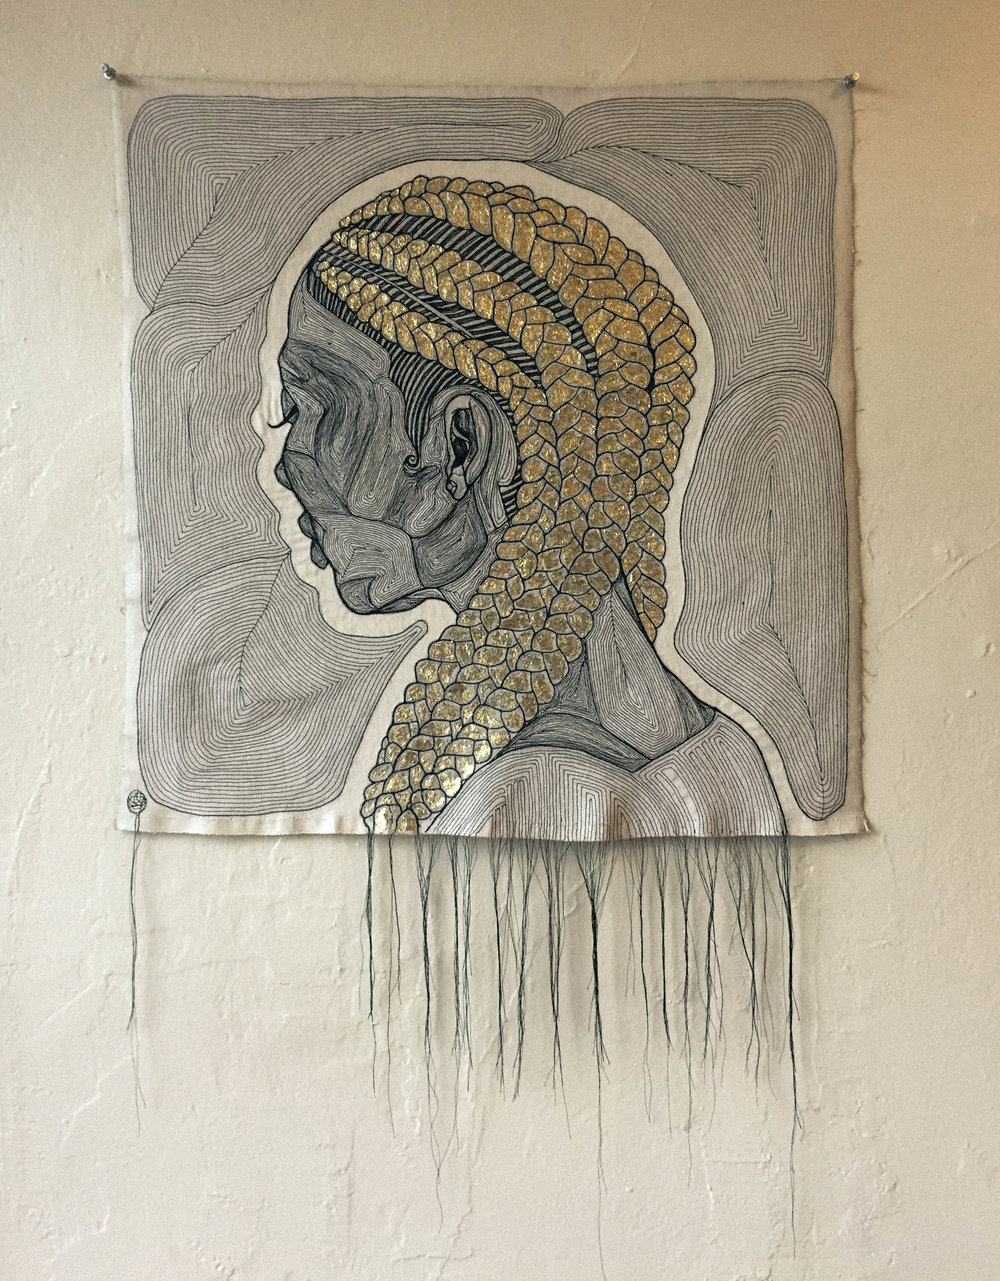 YOUR PRIME  - COTTON THREAD, RAW DENIM, GOLD LEAF, ACRYLIC